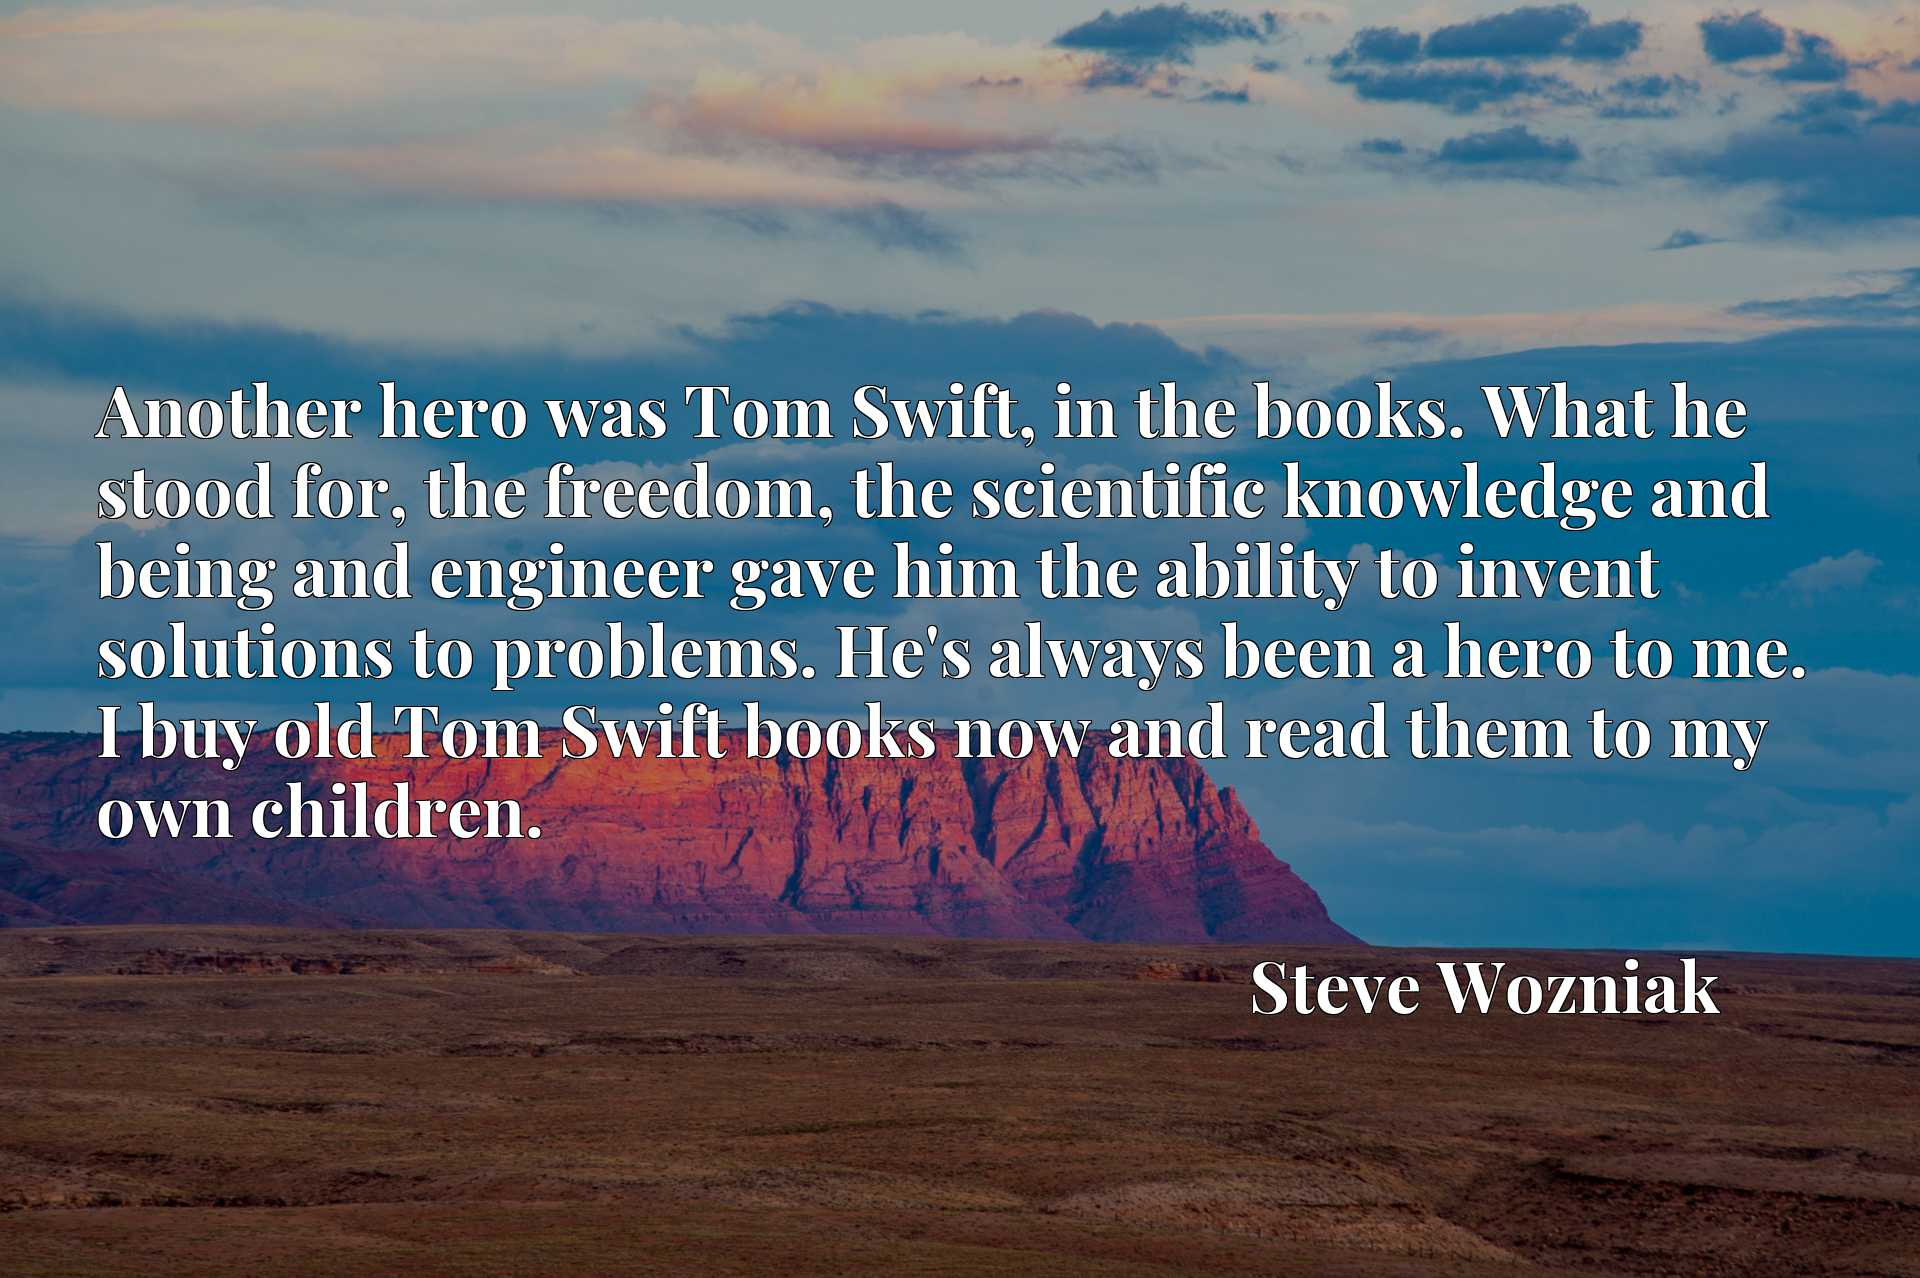 Another hero was Tom Swift, in the books. What he stood for, the freedom, the scientific knowledge and being and engineer gave him the ability to invent solutions to problems. He's always been a hero to me. I buy old Tom Swift books now and read them to my own children.